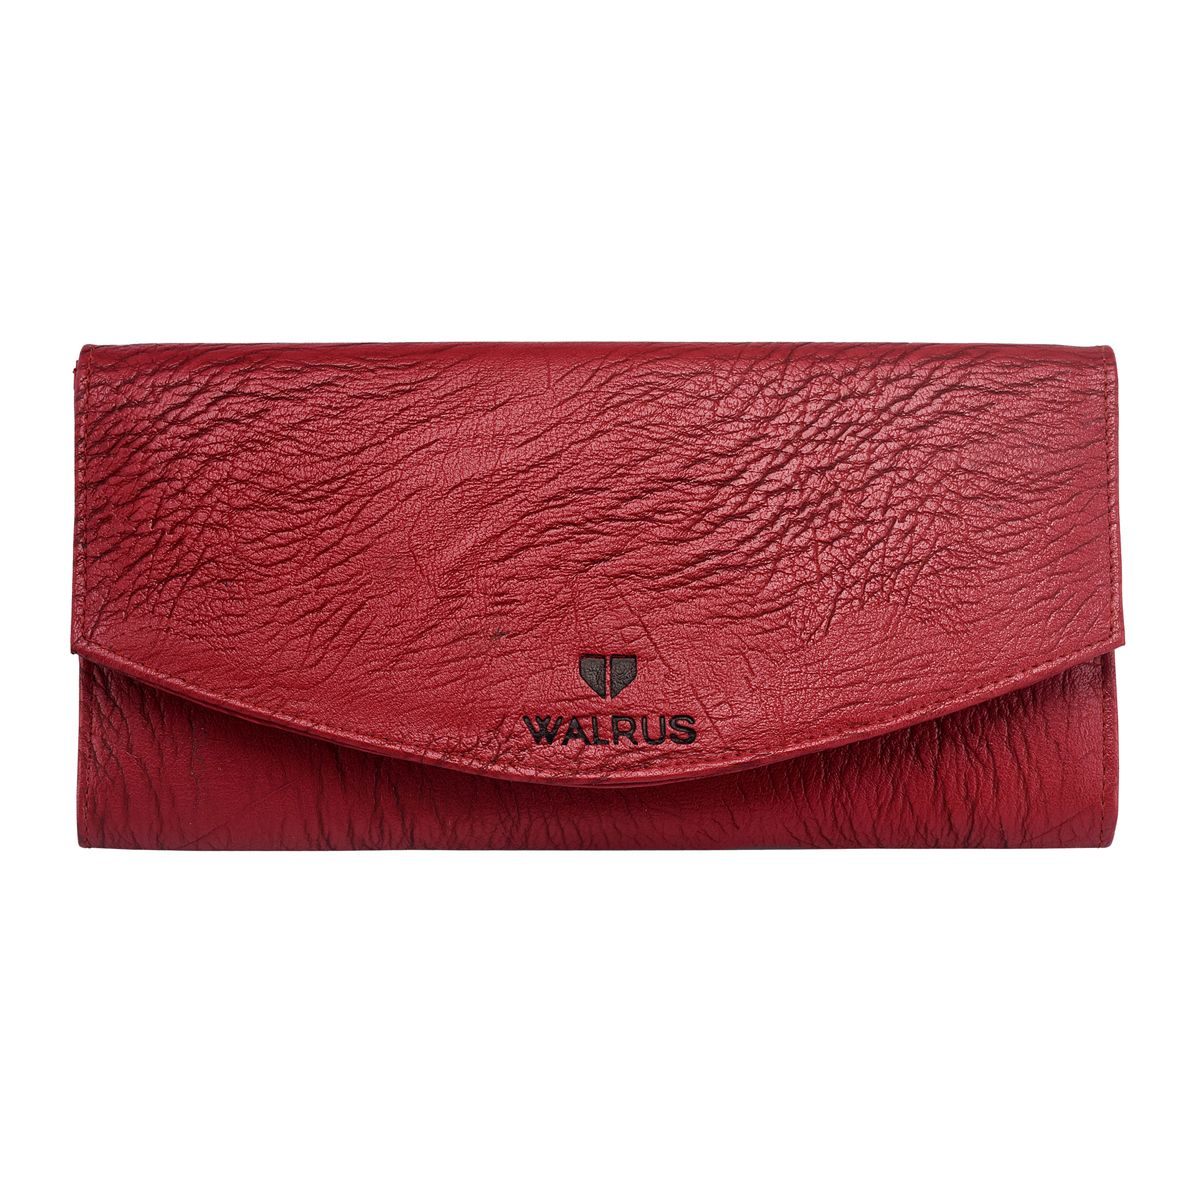 Walrus Chloe Red Color Women Hand Clutch